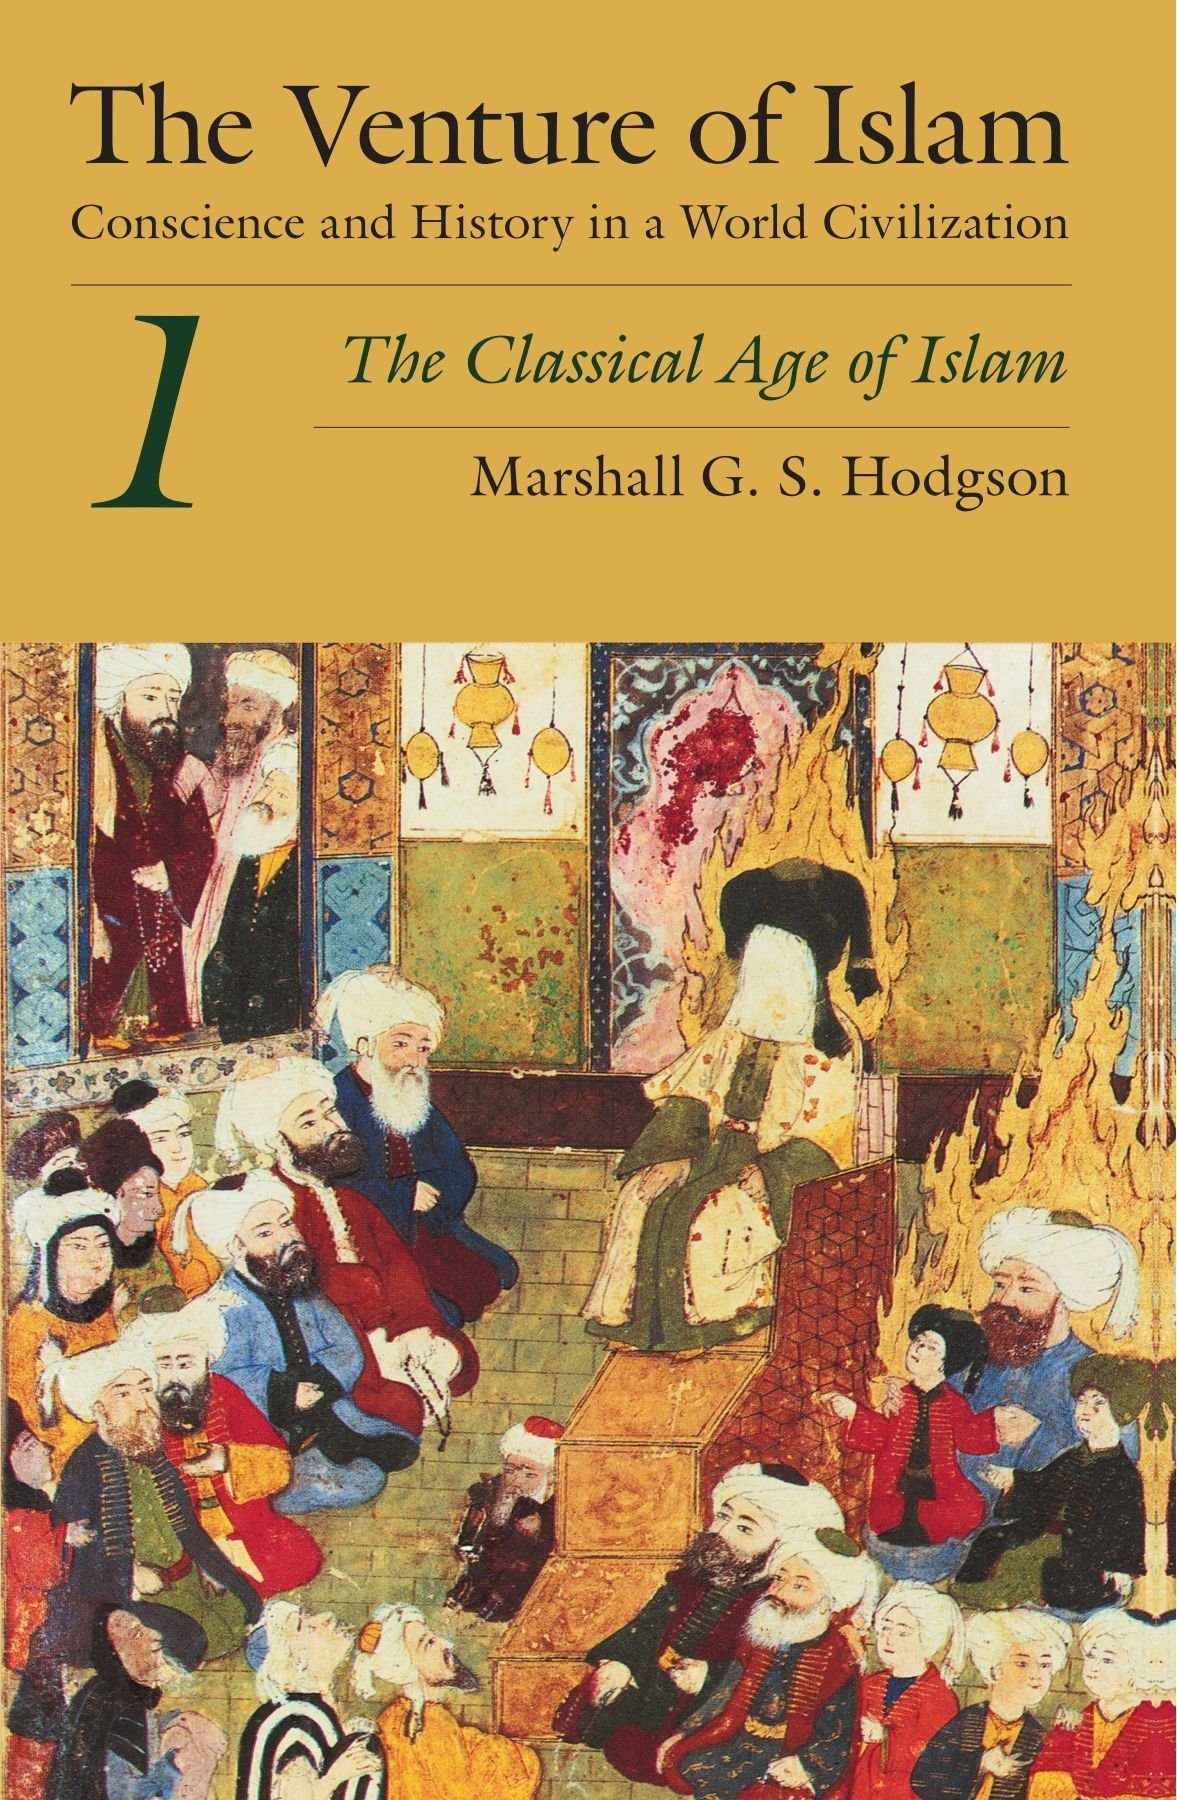 Top 12 Islamic History Books Every Muslim Must Read